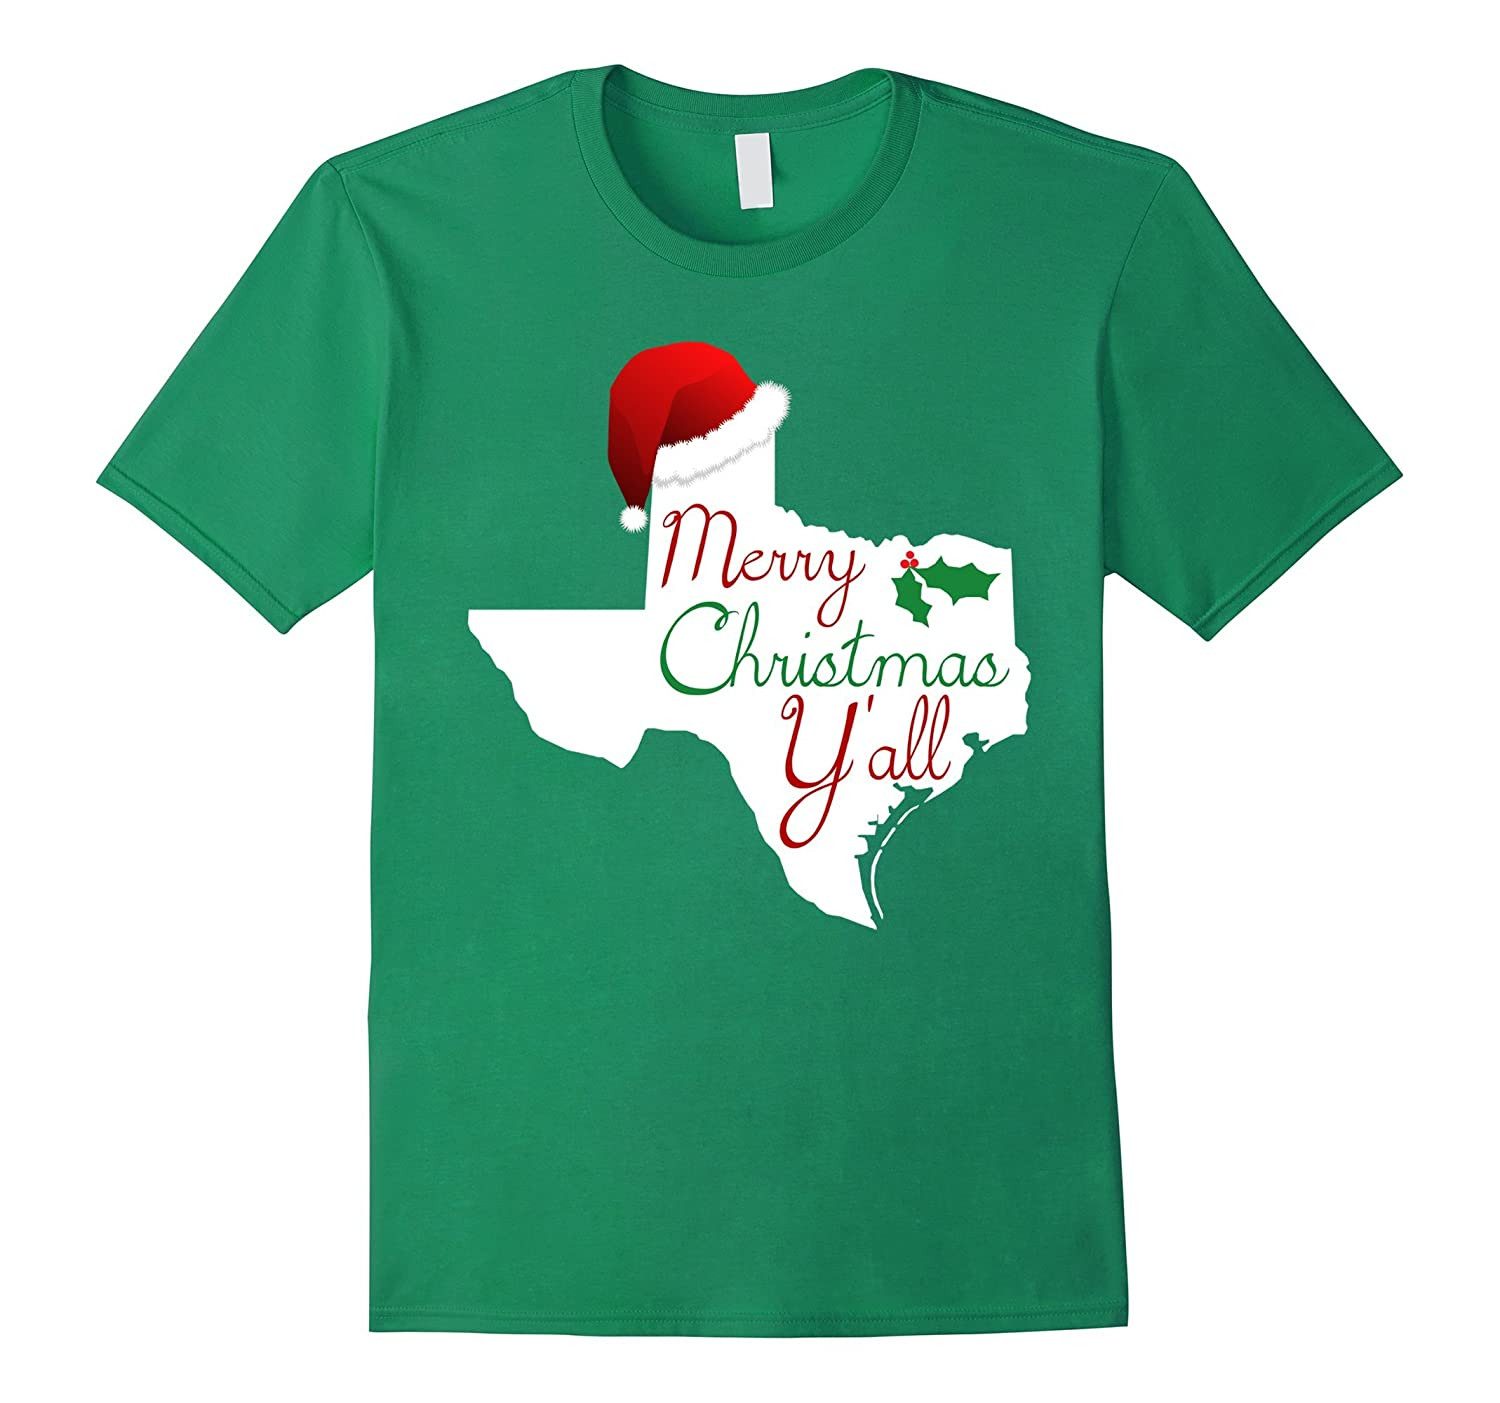 d51d7218 Texas Christmas Shirt - Merry Christmas Y'all Texas XMas Tee-ANZ ...